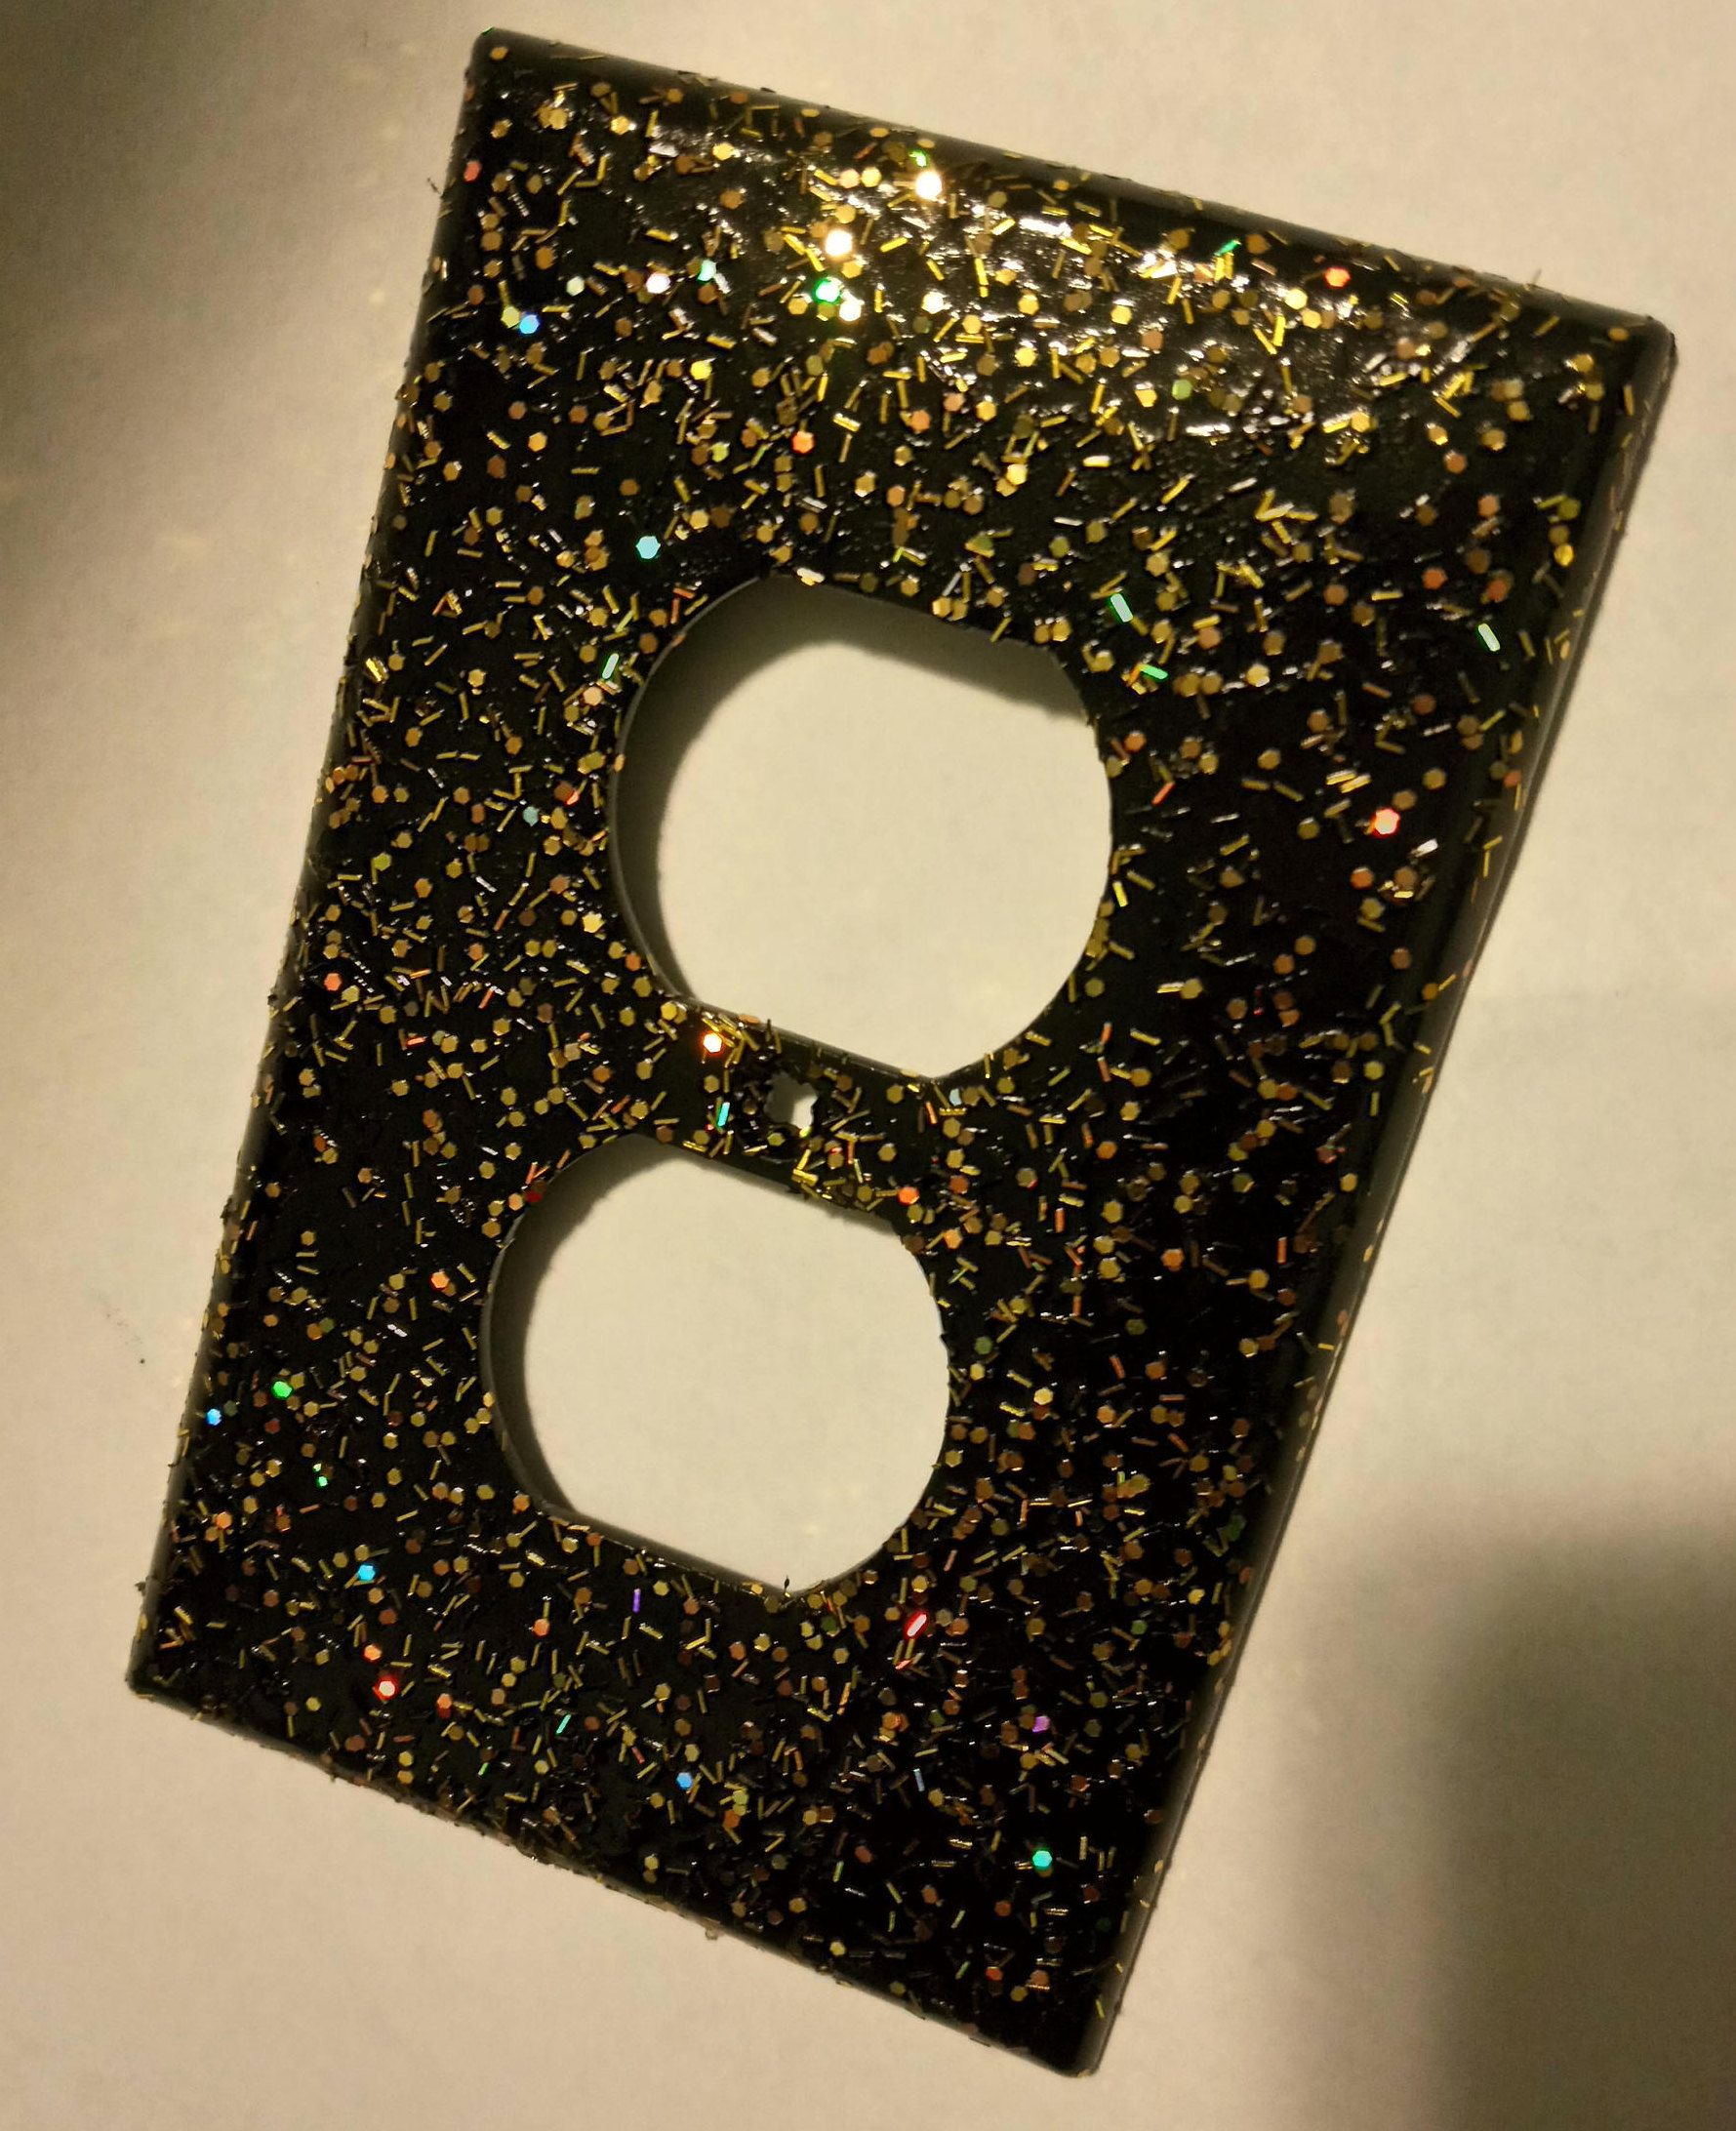 Gold Outlet Covers Glossy Black With Sparkly Holographic Gold Confetti Glitter